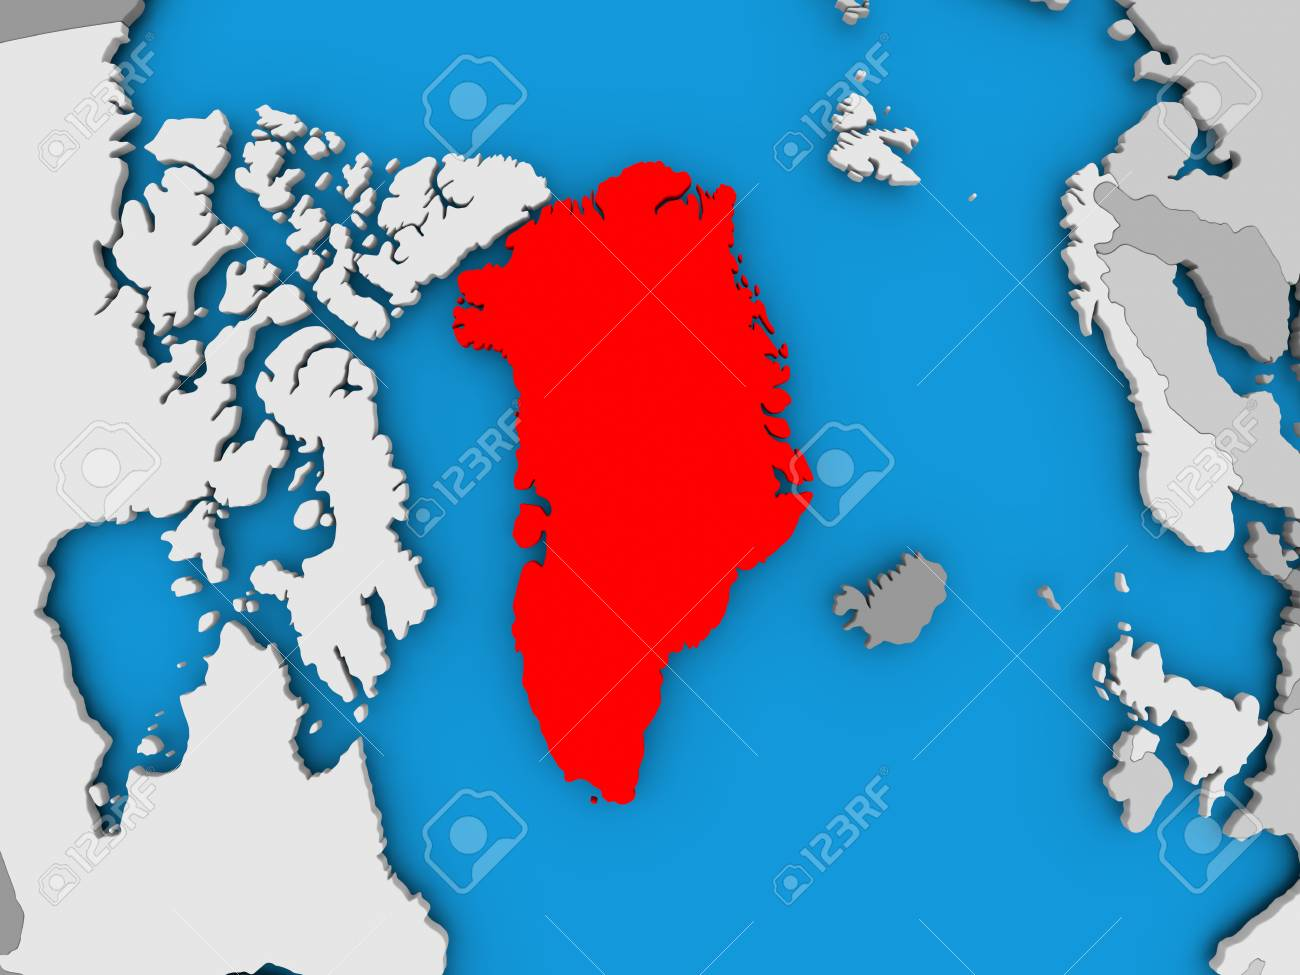 Greenland In Red On Political Map 3d Illustration Stock Photo